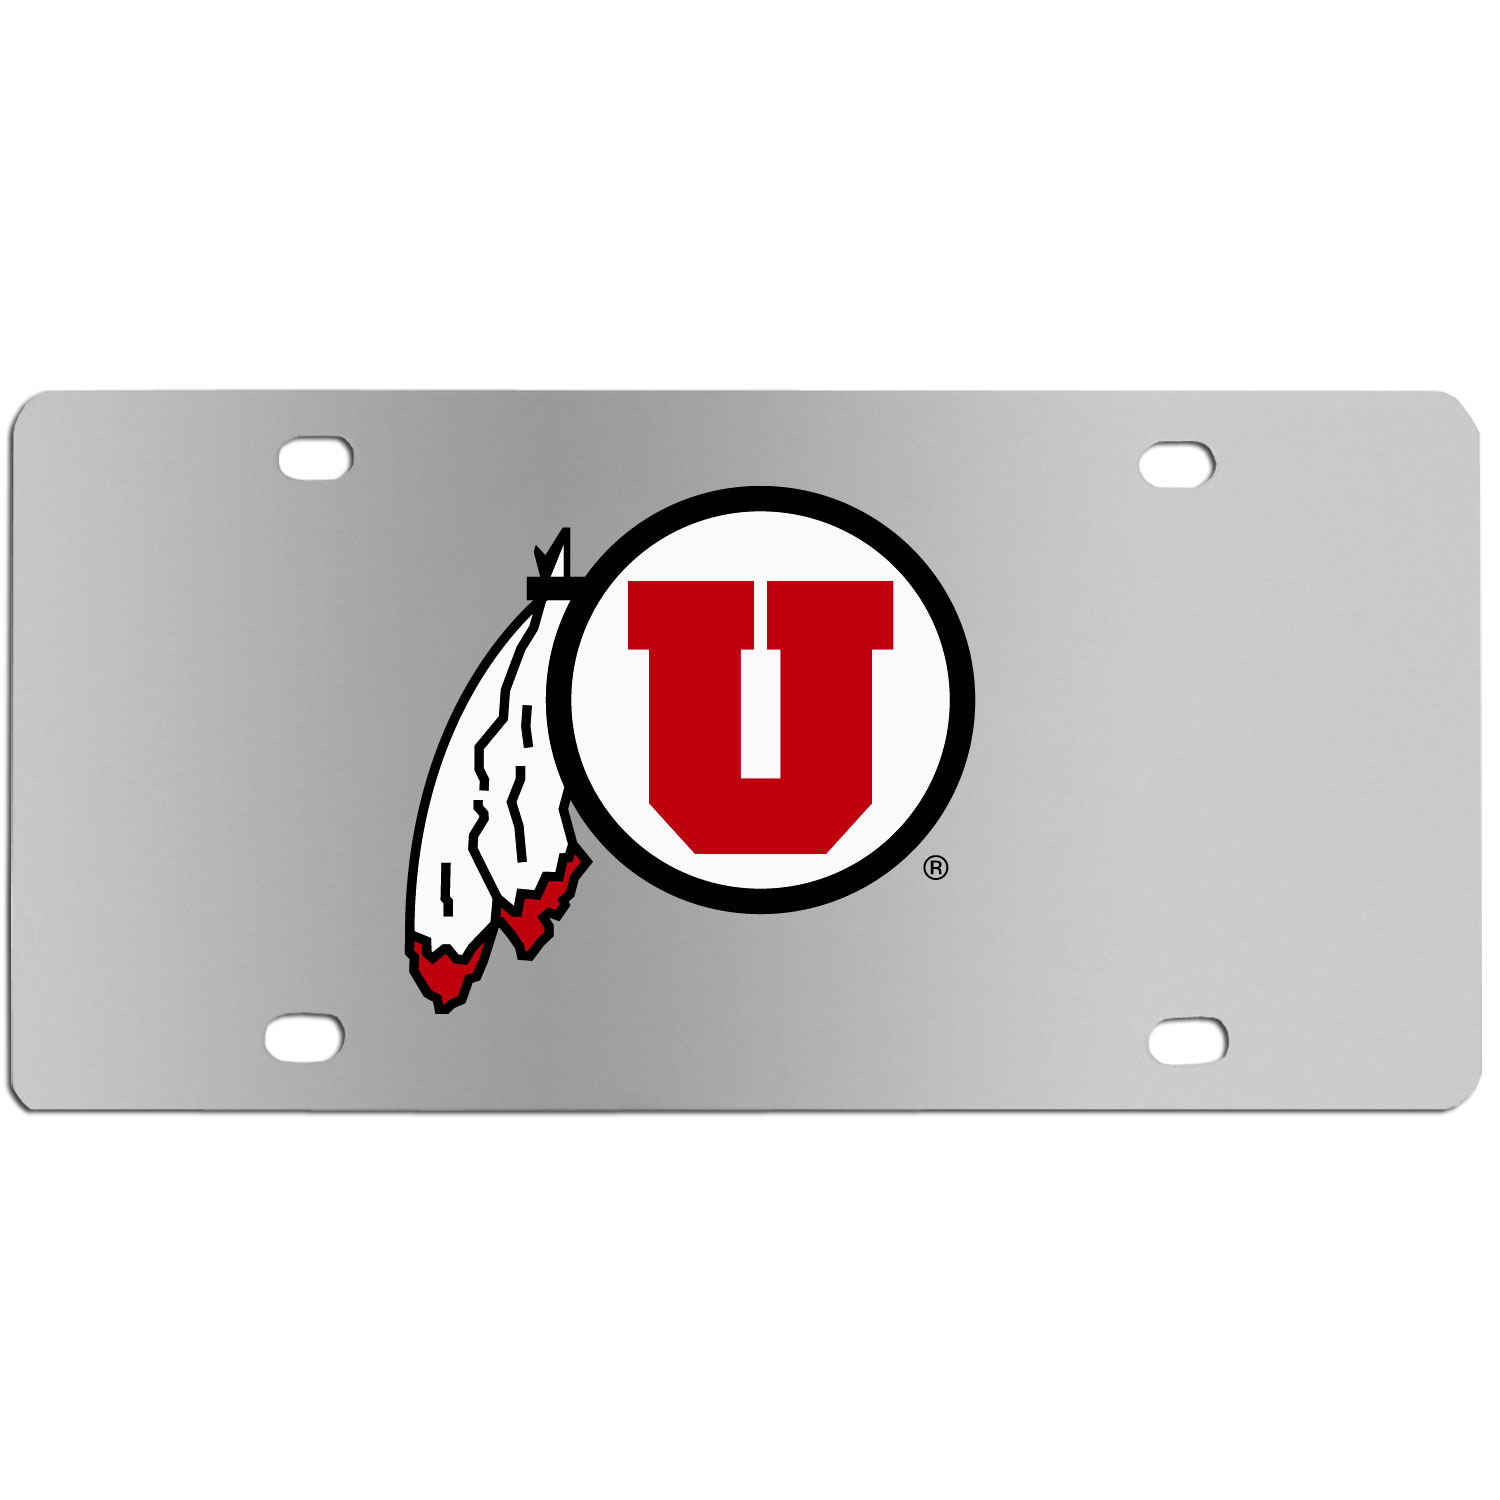 Utah Utes Steel License Plate Wall Plaque - This high-quality stainless steel license plate features a detailed team logo on a the polished surface. The attractive plate is perfect for wall mounting in your home or office to become the perfect die-hard Utah Utes fan decor.